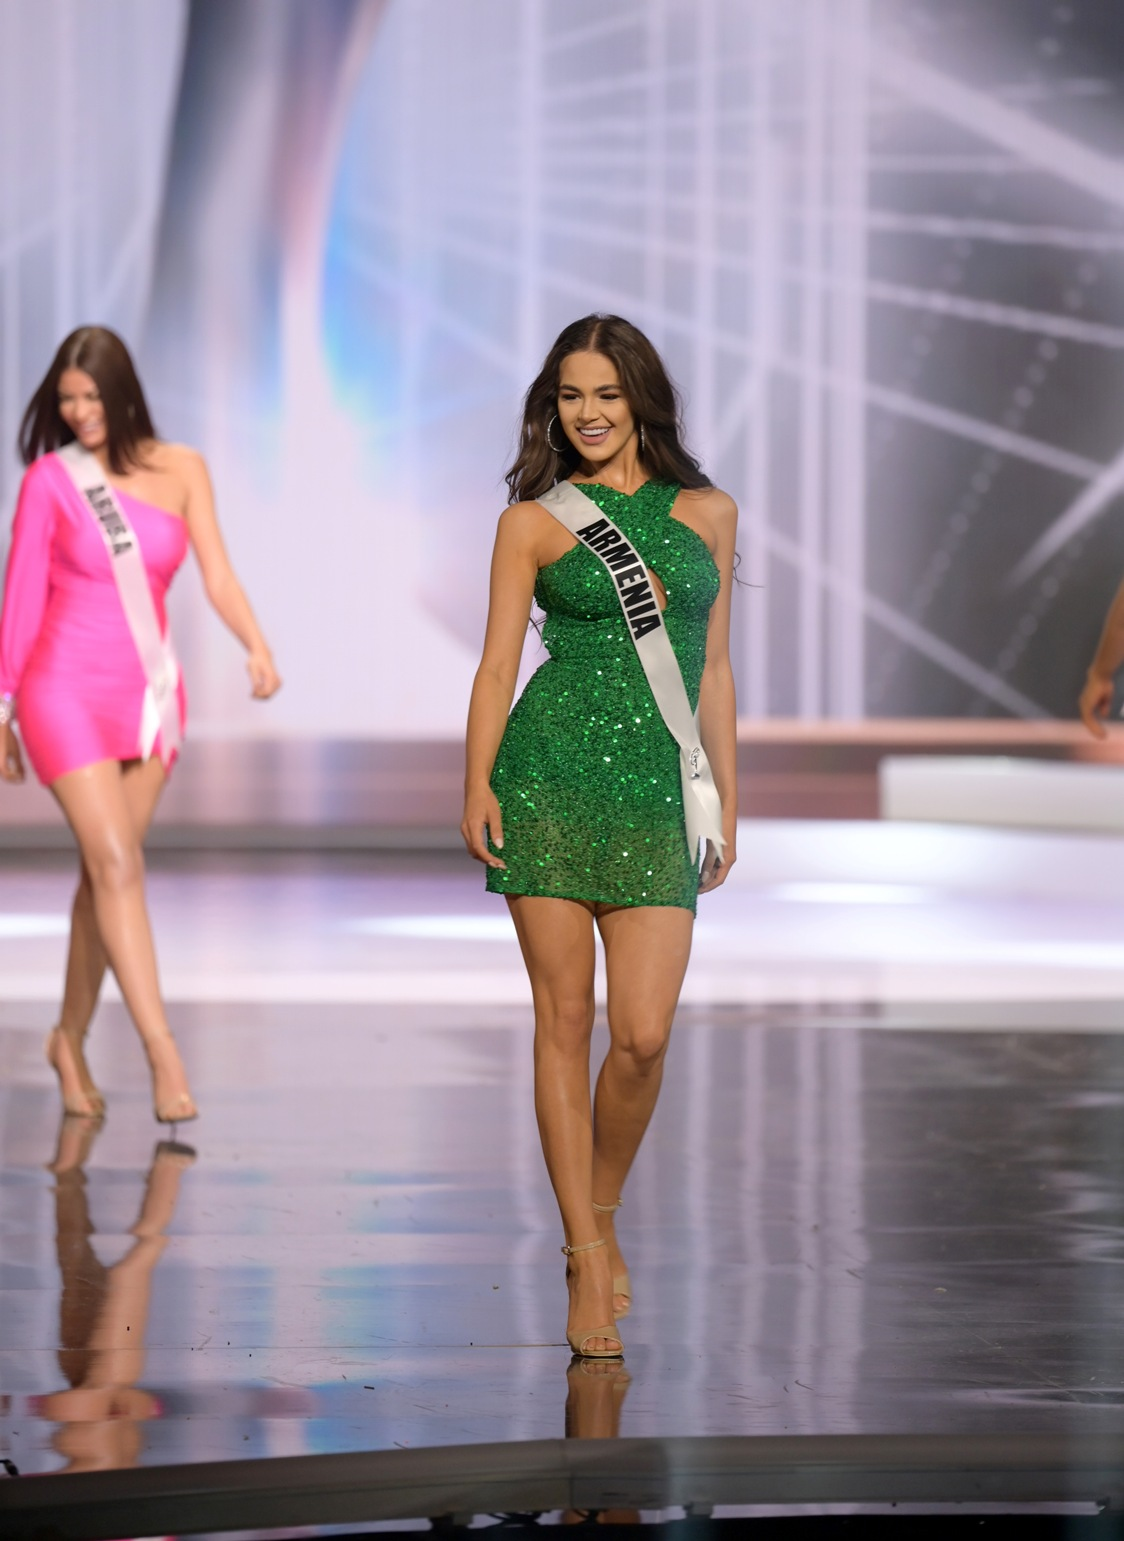 Monika Grigoryan, Miss Universe Armenia 2020 on stage in fashion by Sherri Hill during the opening of the MISS UNIVERSE® Preliminary Competition at the Seminole Hard Rock Hotel & Casino in Hollywood, Florida on May 14, 2021. Tune in to the live telecast on FYI and Telemundo on Sunday, May 16 at 8:00 PM ET to see who will become the next Miss Universe.